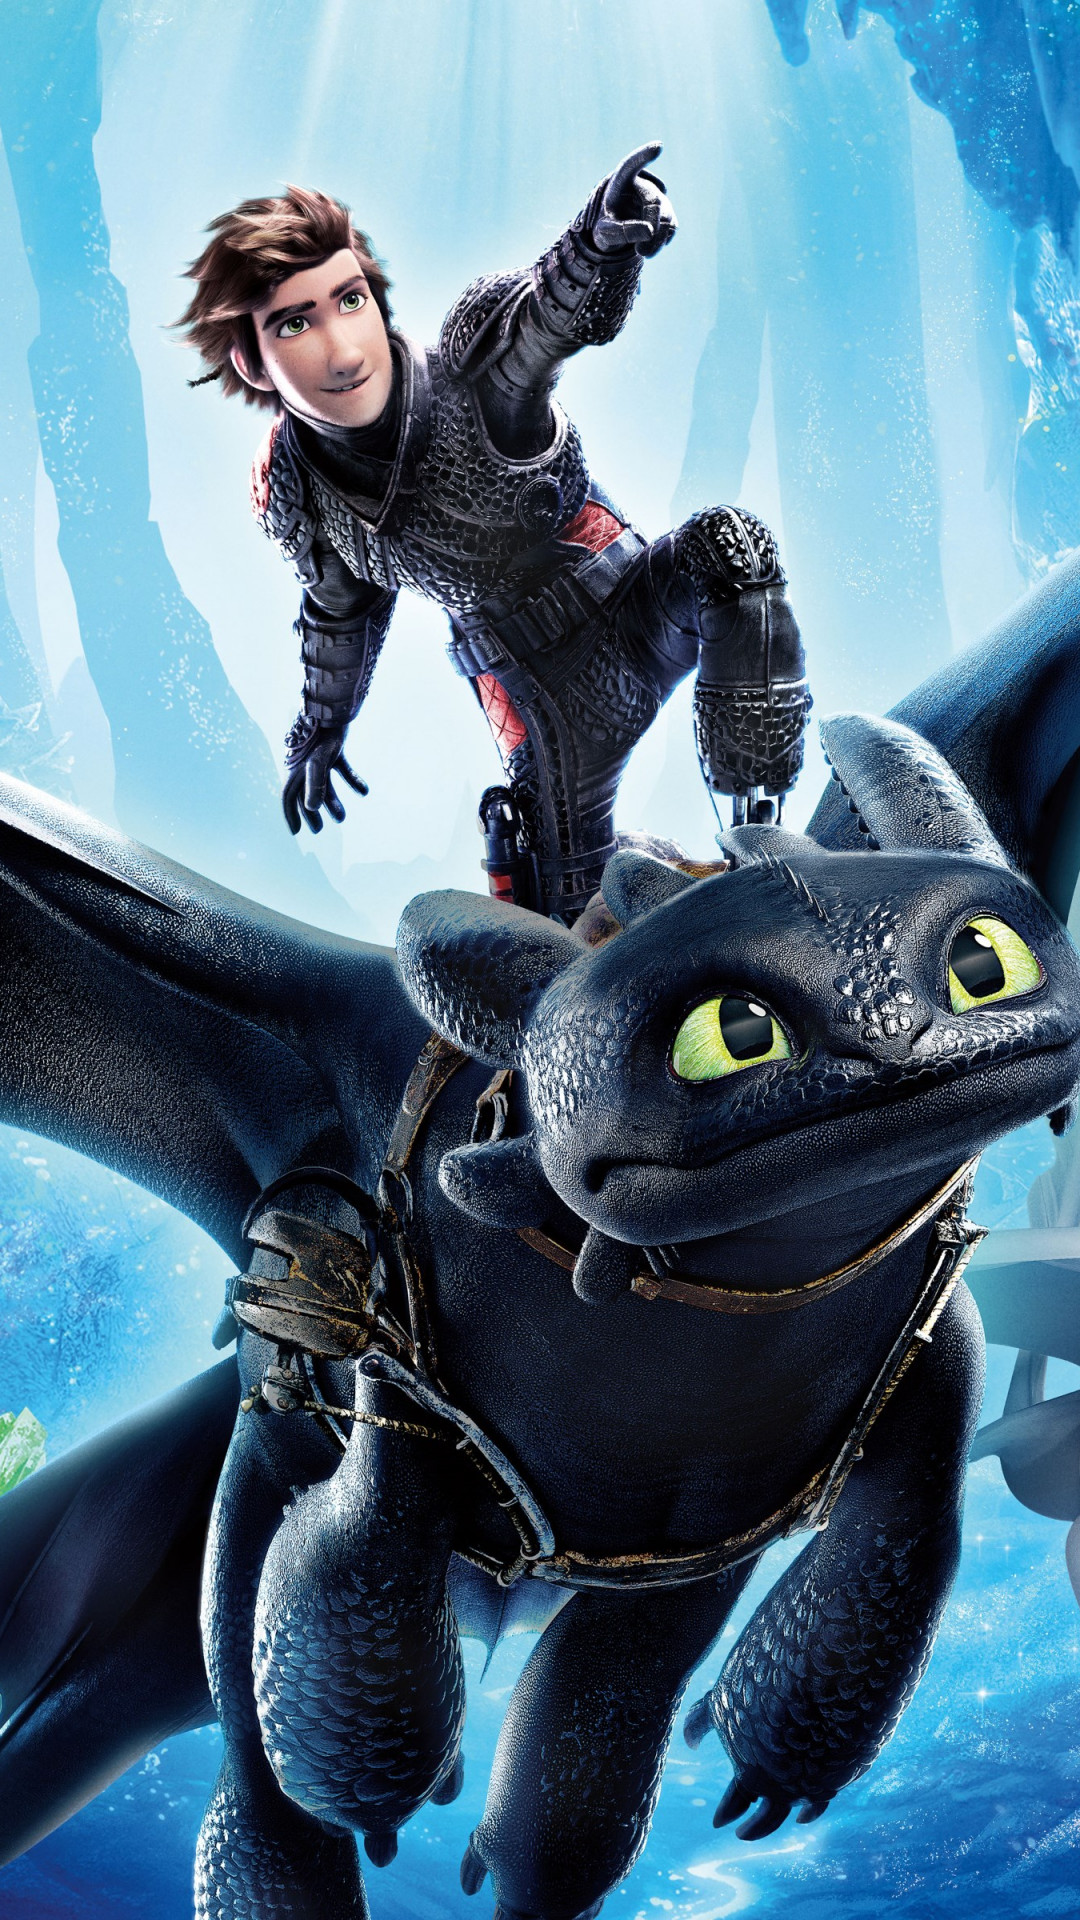 Download wallpaper: How to Train Your Dragon 2019 1080x1920